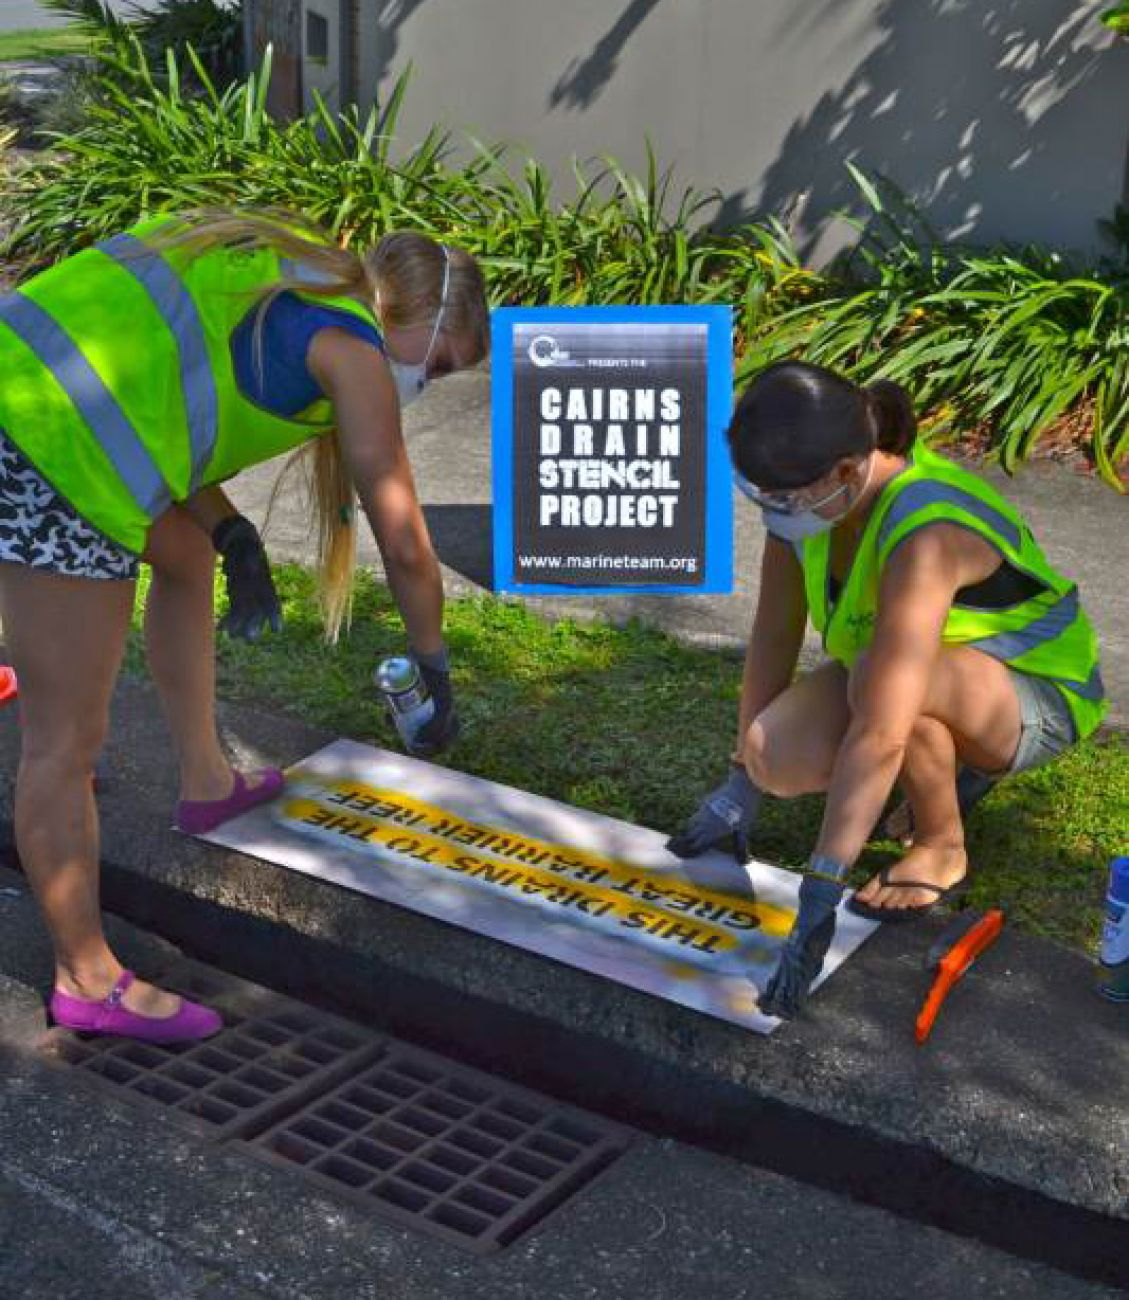 Cairns drain stencil project, alerting people that 'This drains to the Great Barrier Reef'